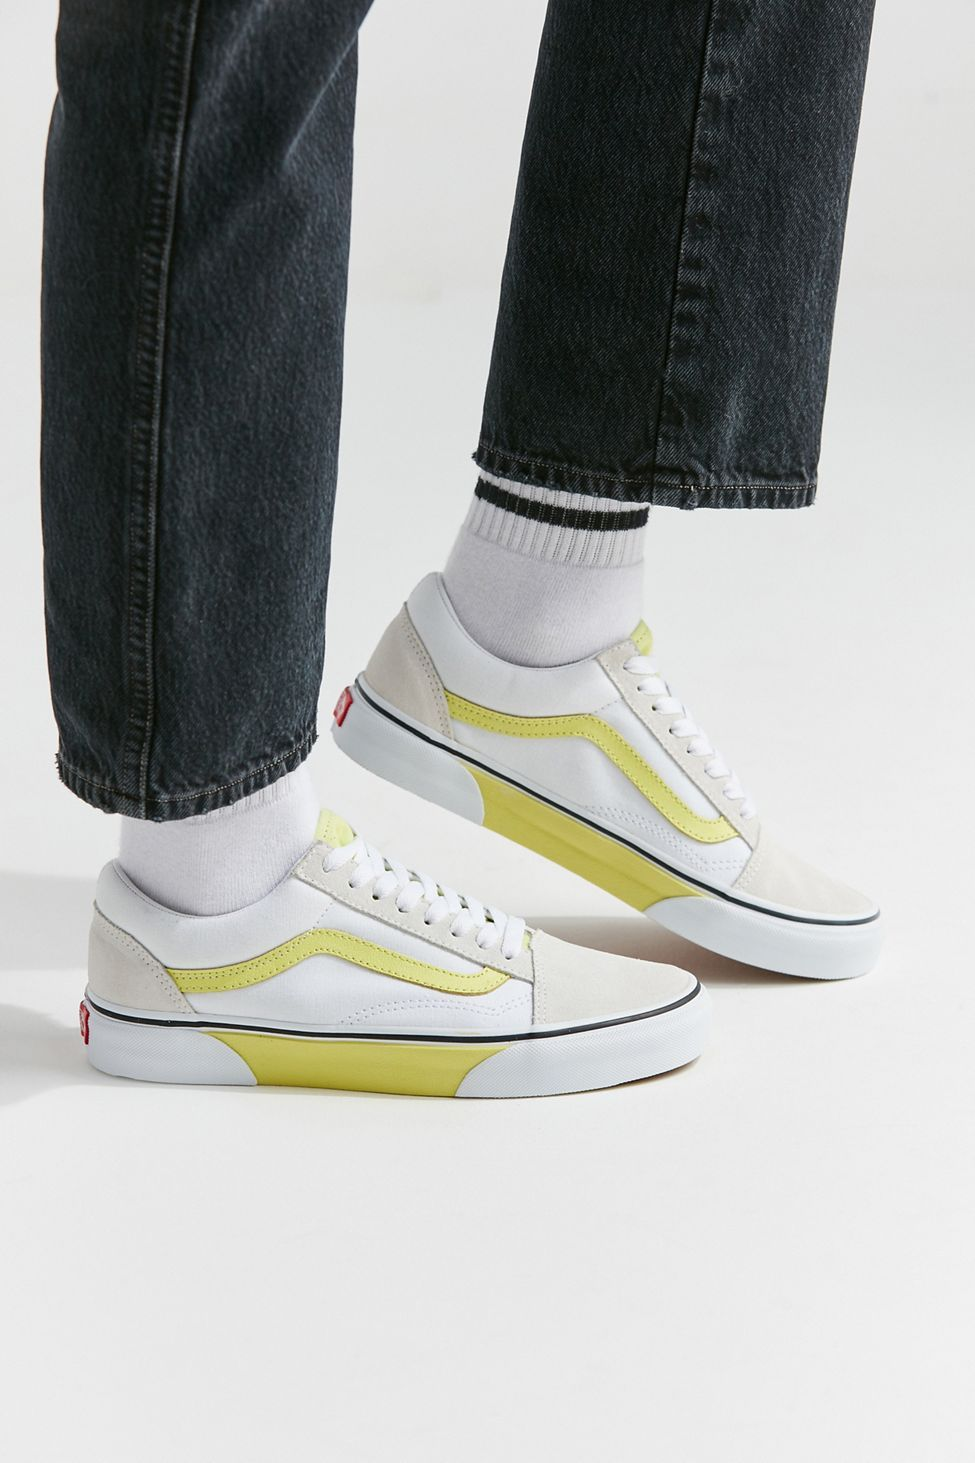 93819bcc4366f6 Vans Old Skool Colorblock Sneaker in 2019